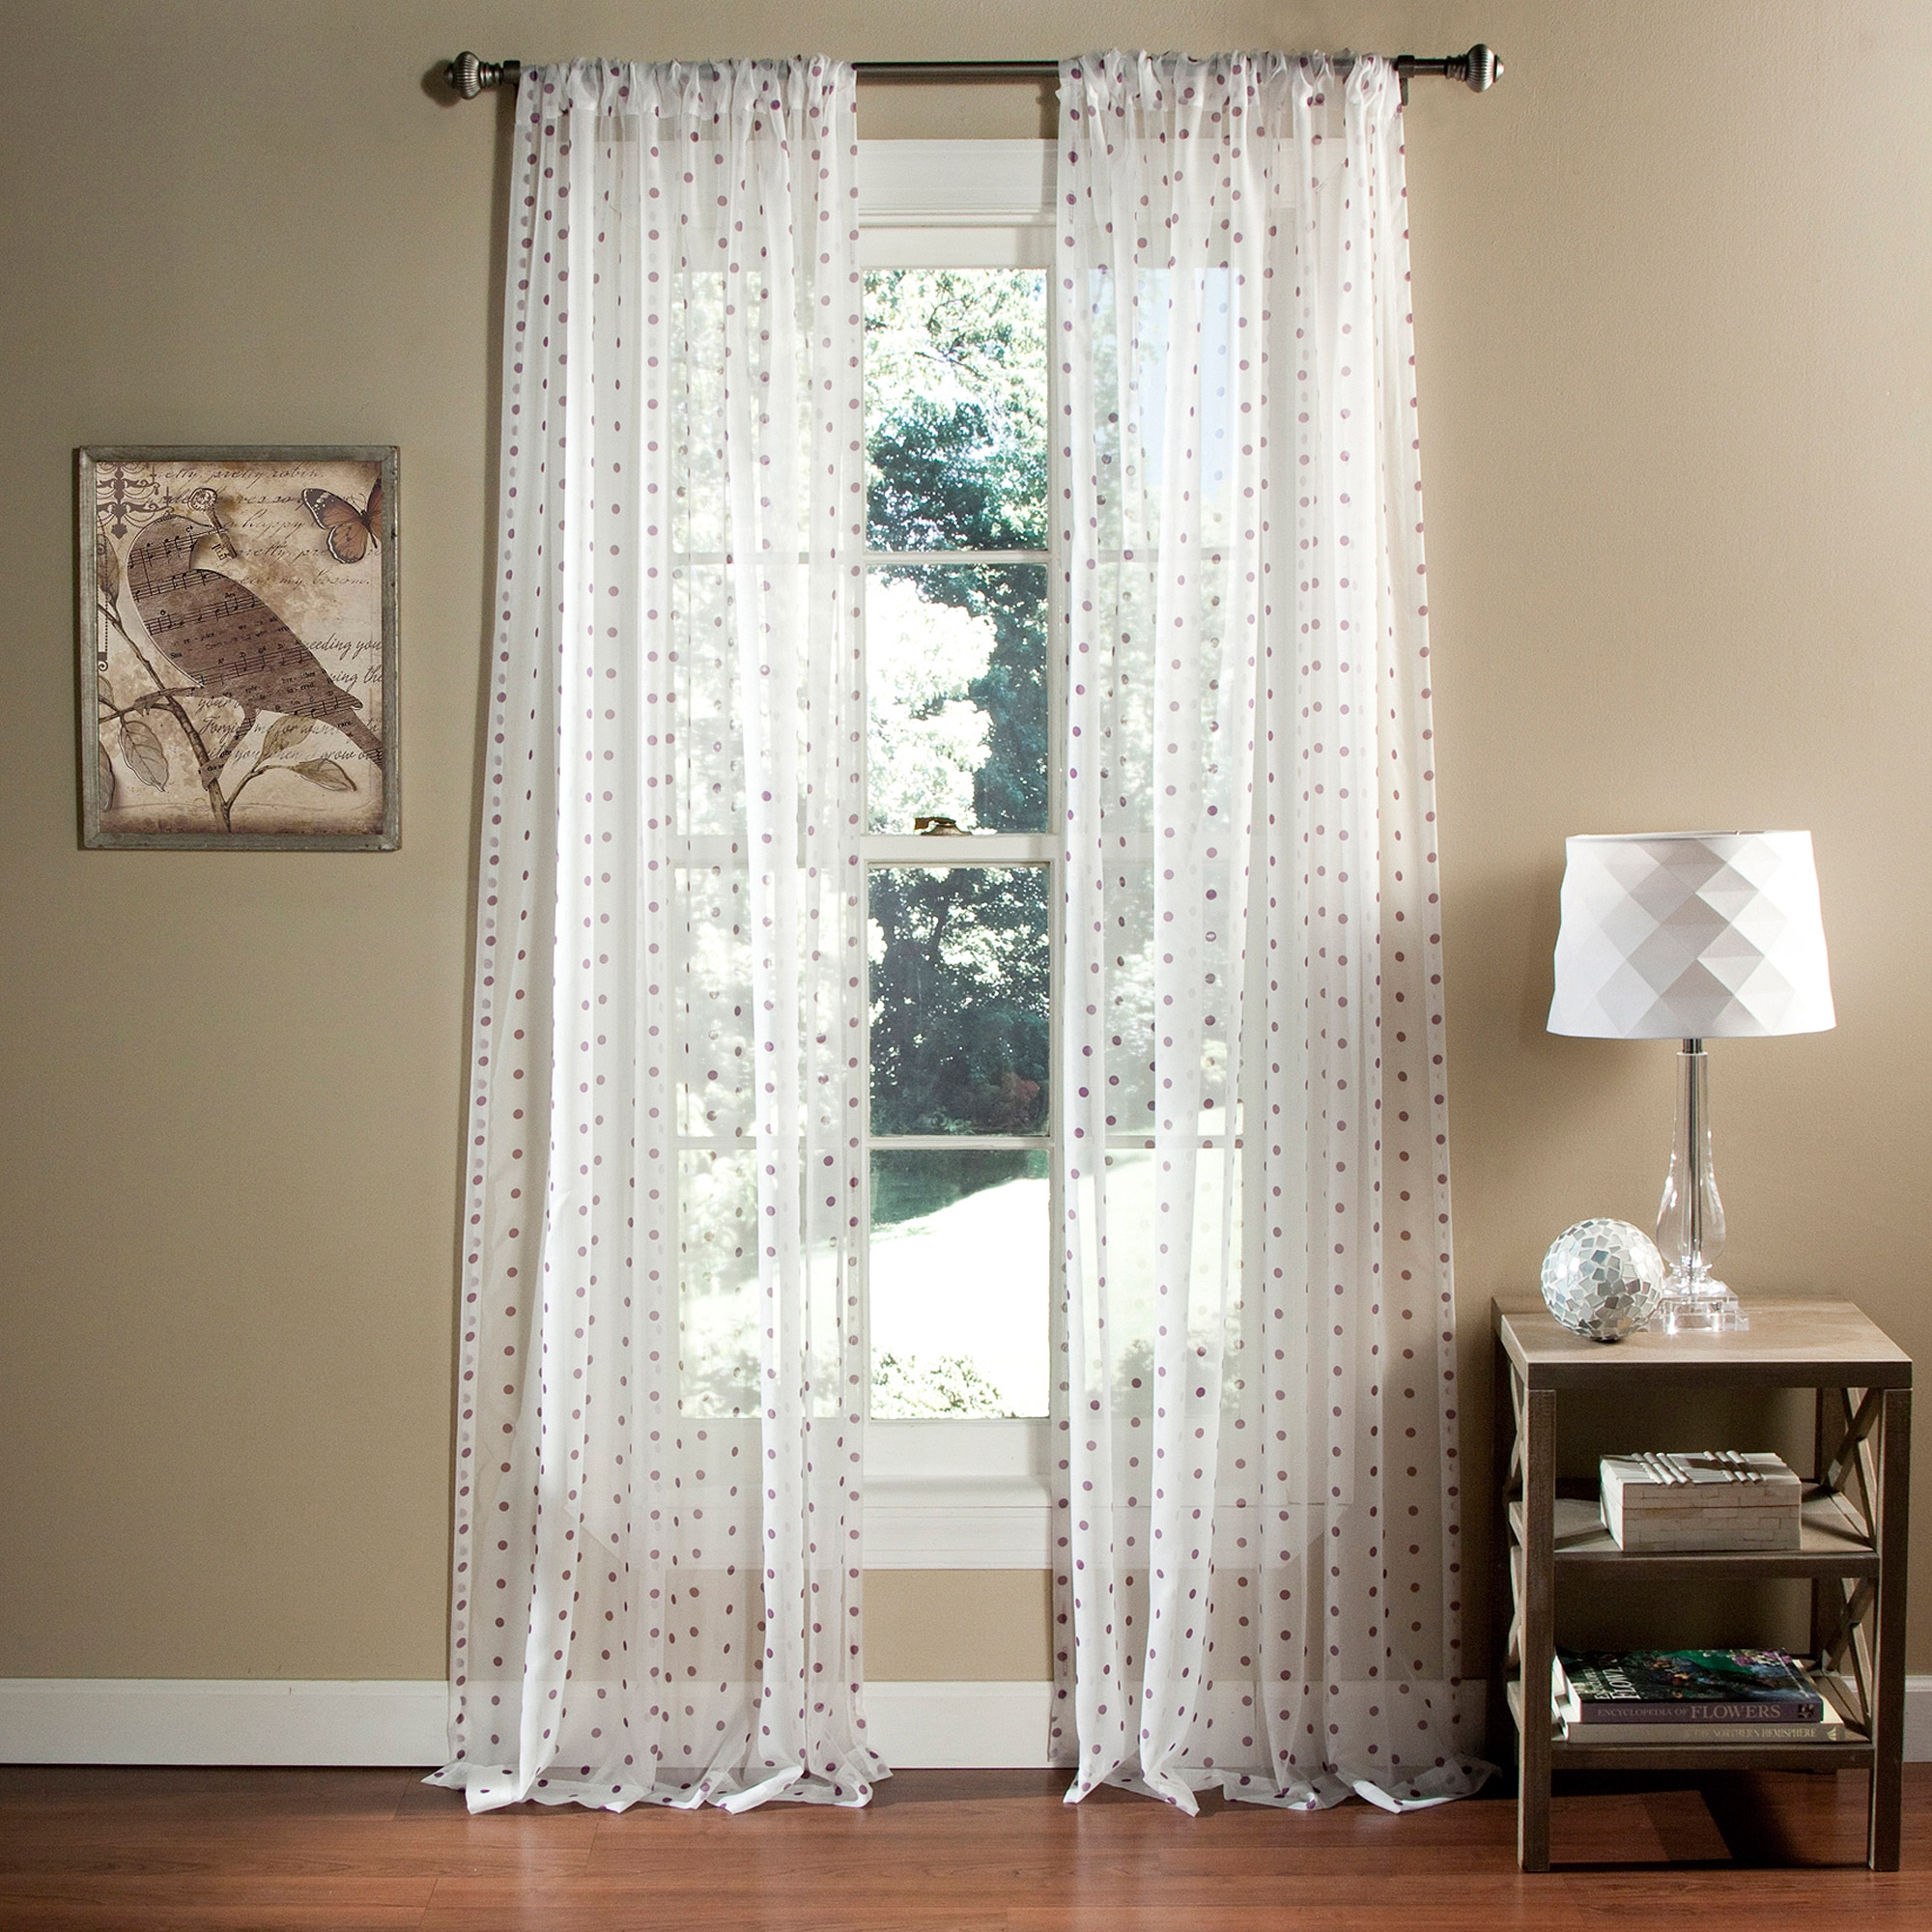 Polka Dot Sheer Window Curtain Set Of 2 Walmart Inside Navy And White Polka Dot Curtains (Image 20 of 25)